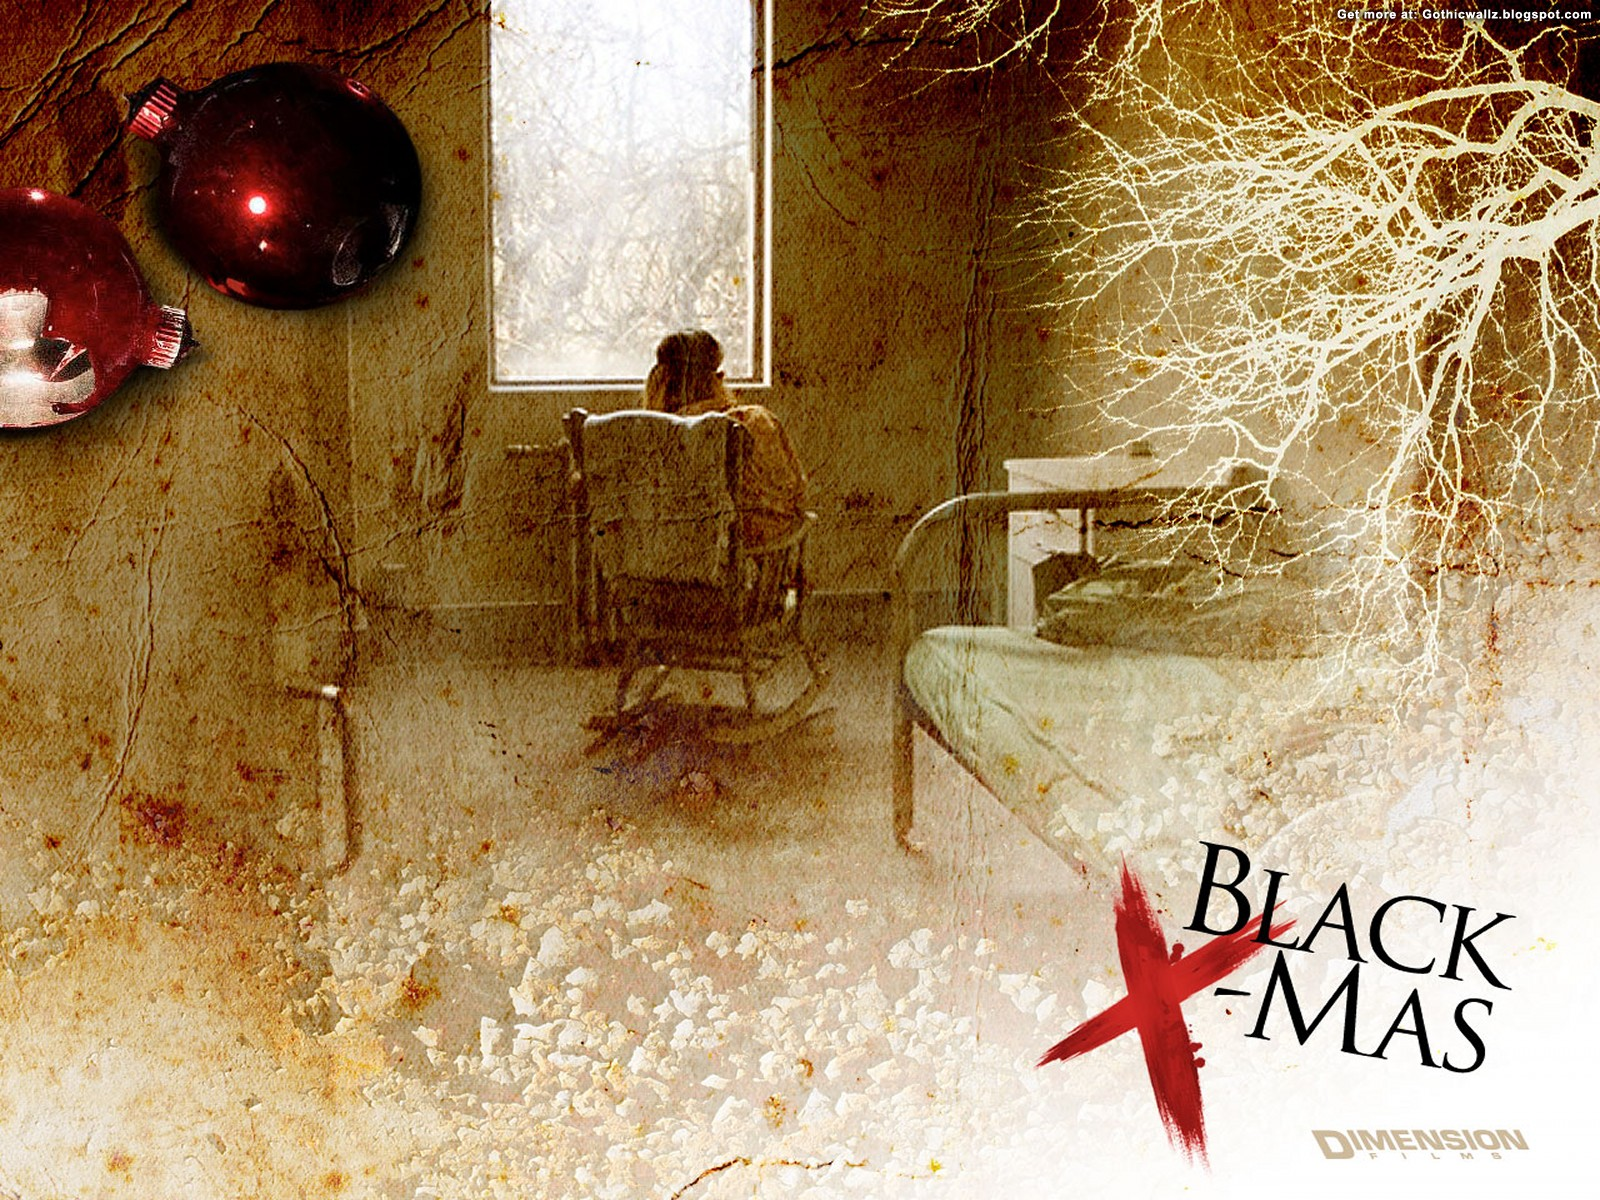 Black Christmas Wallpaper 4 | Gothic Wallpaper Download